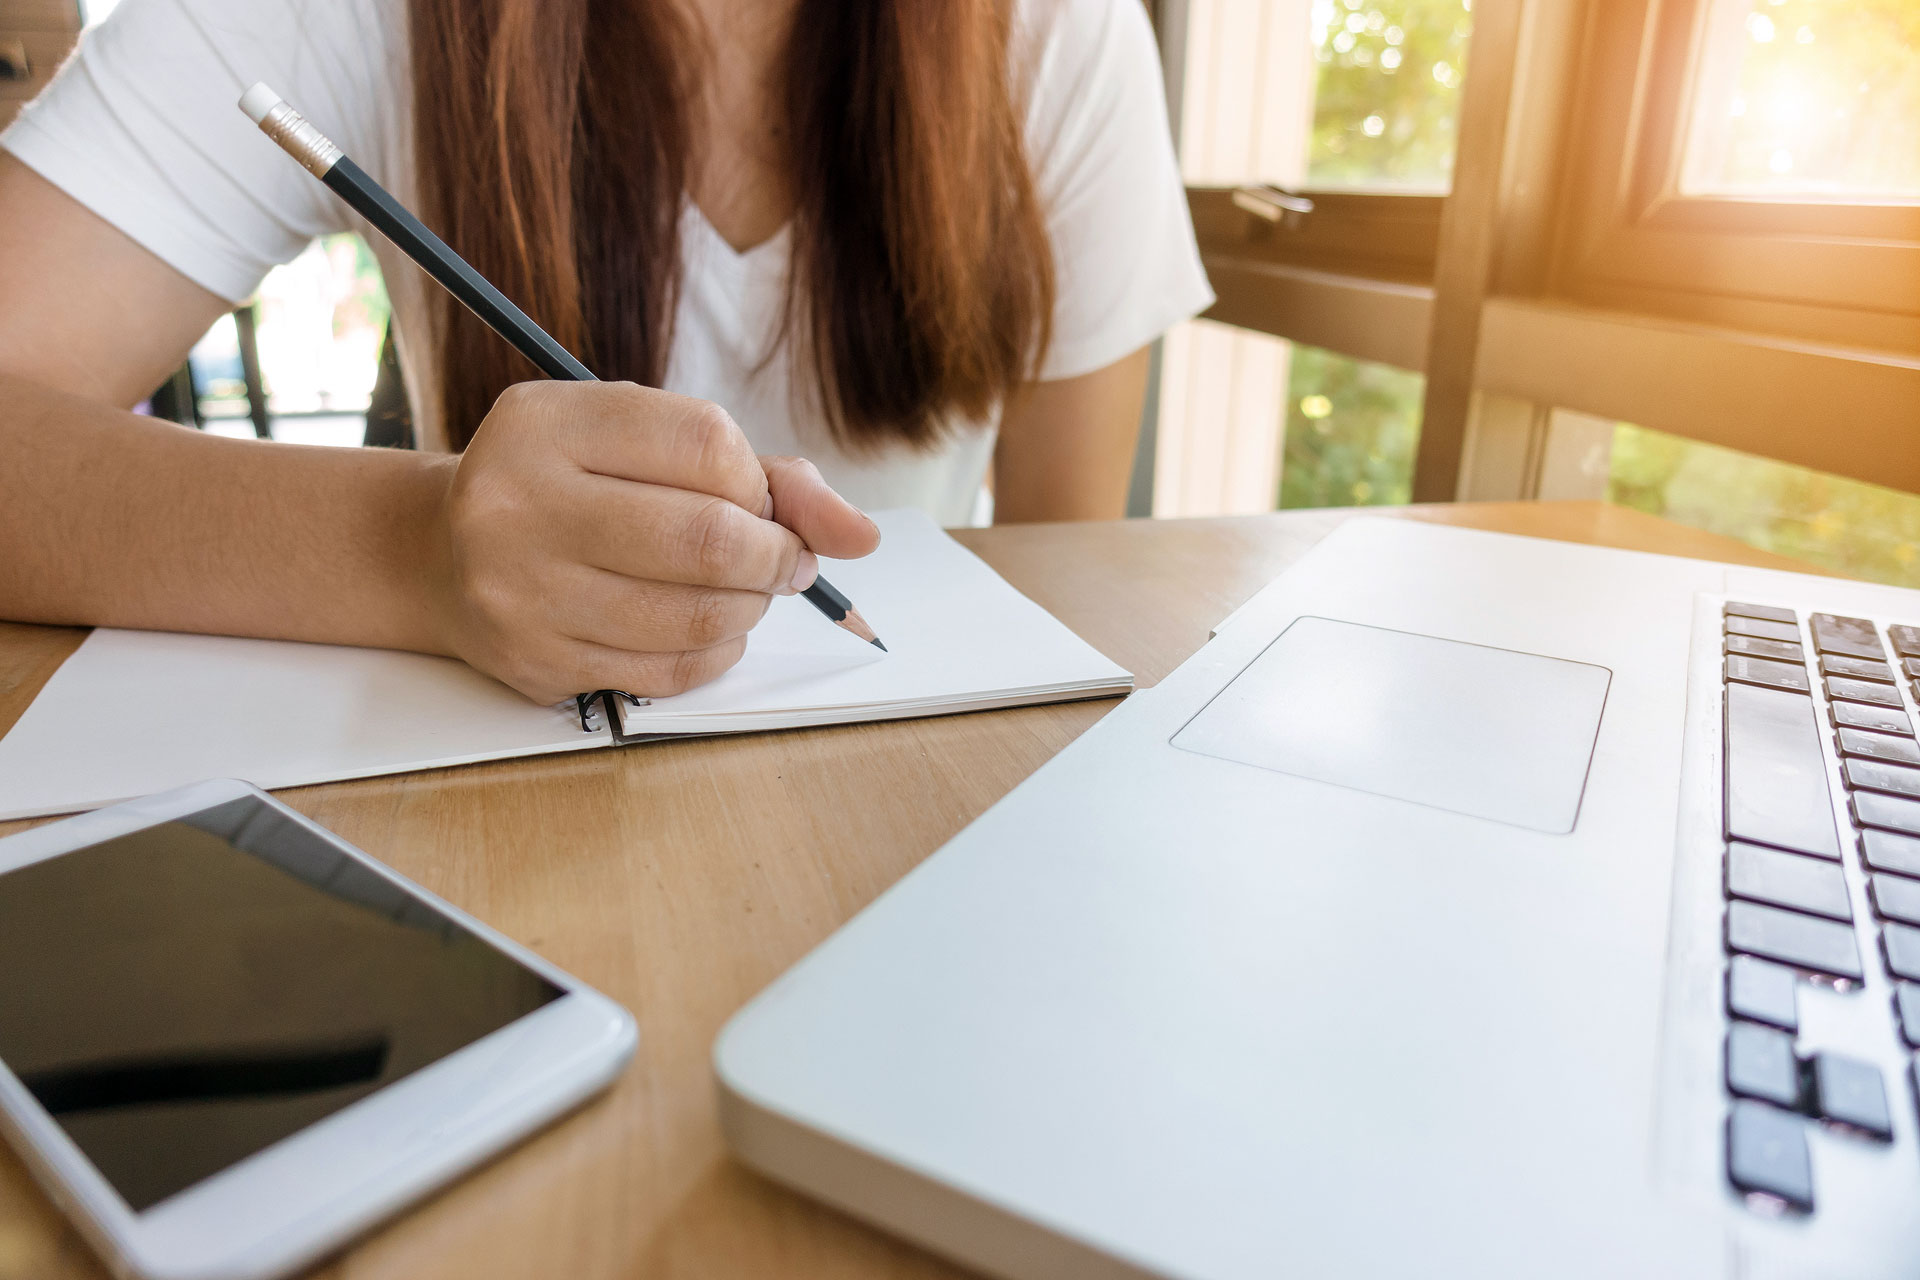 Female student taking notes